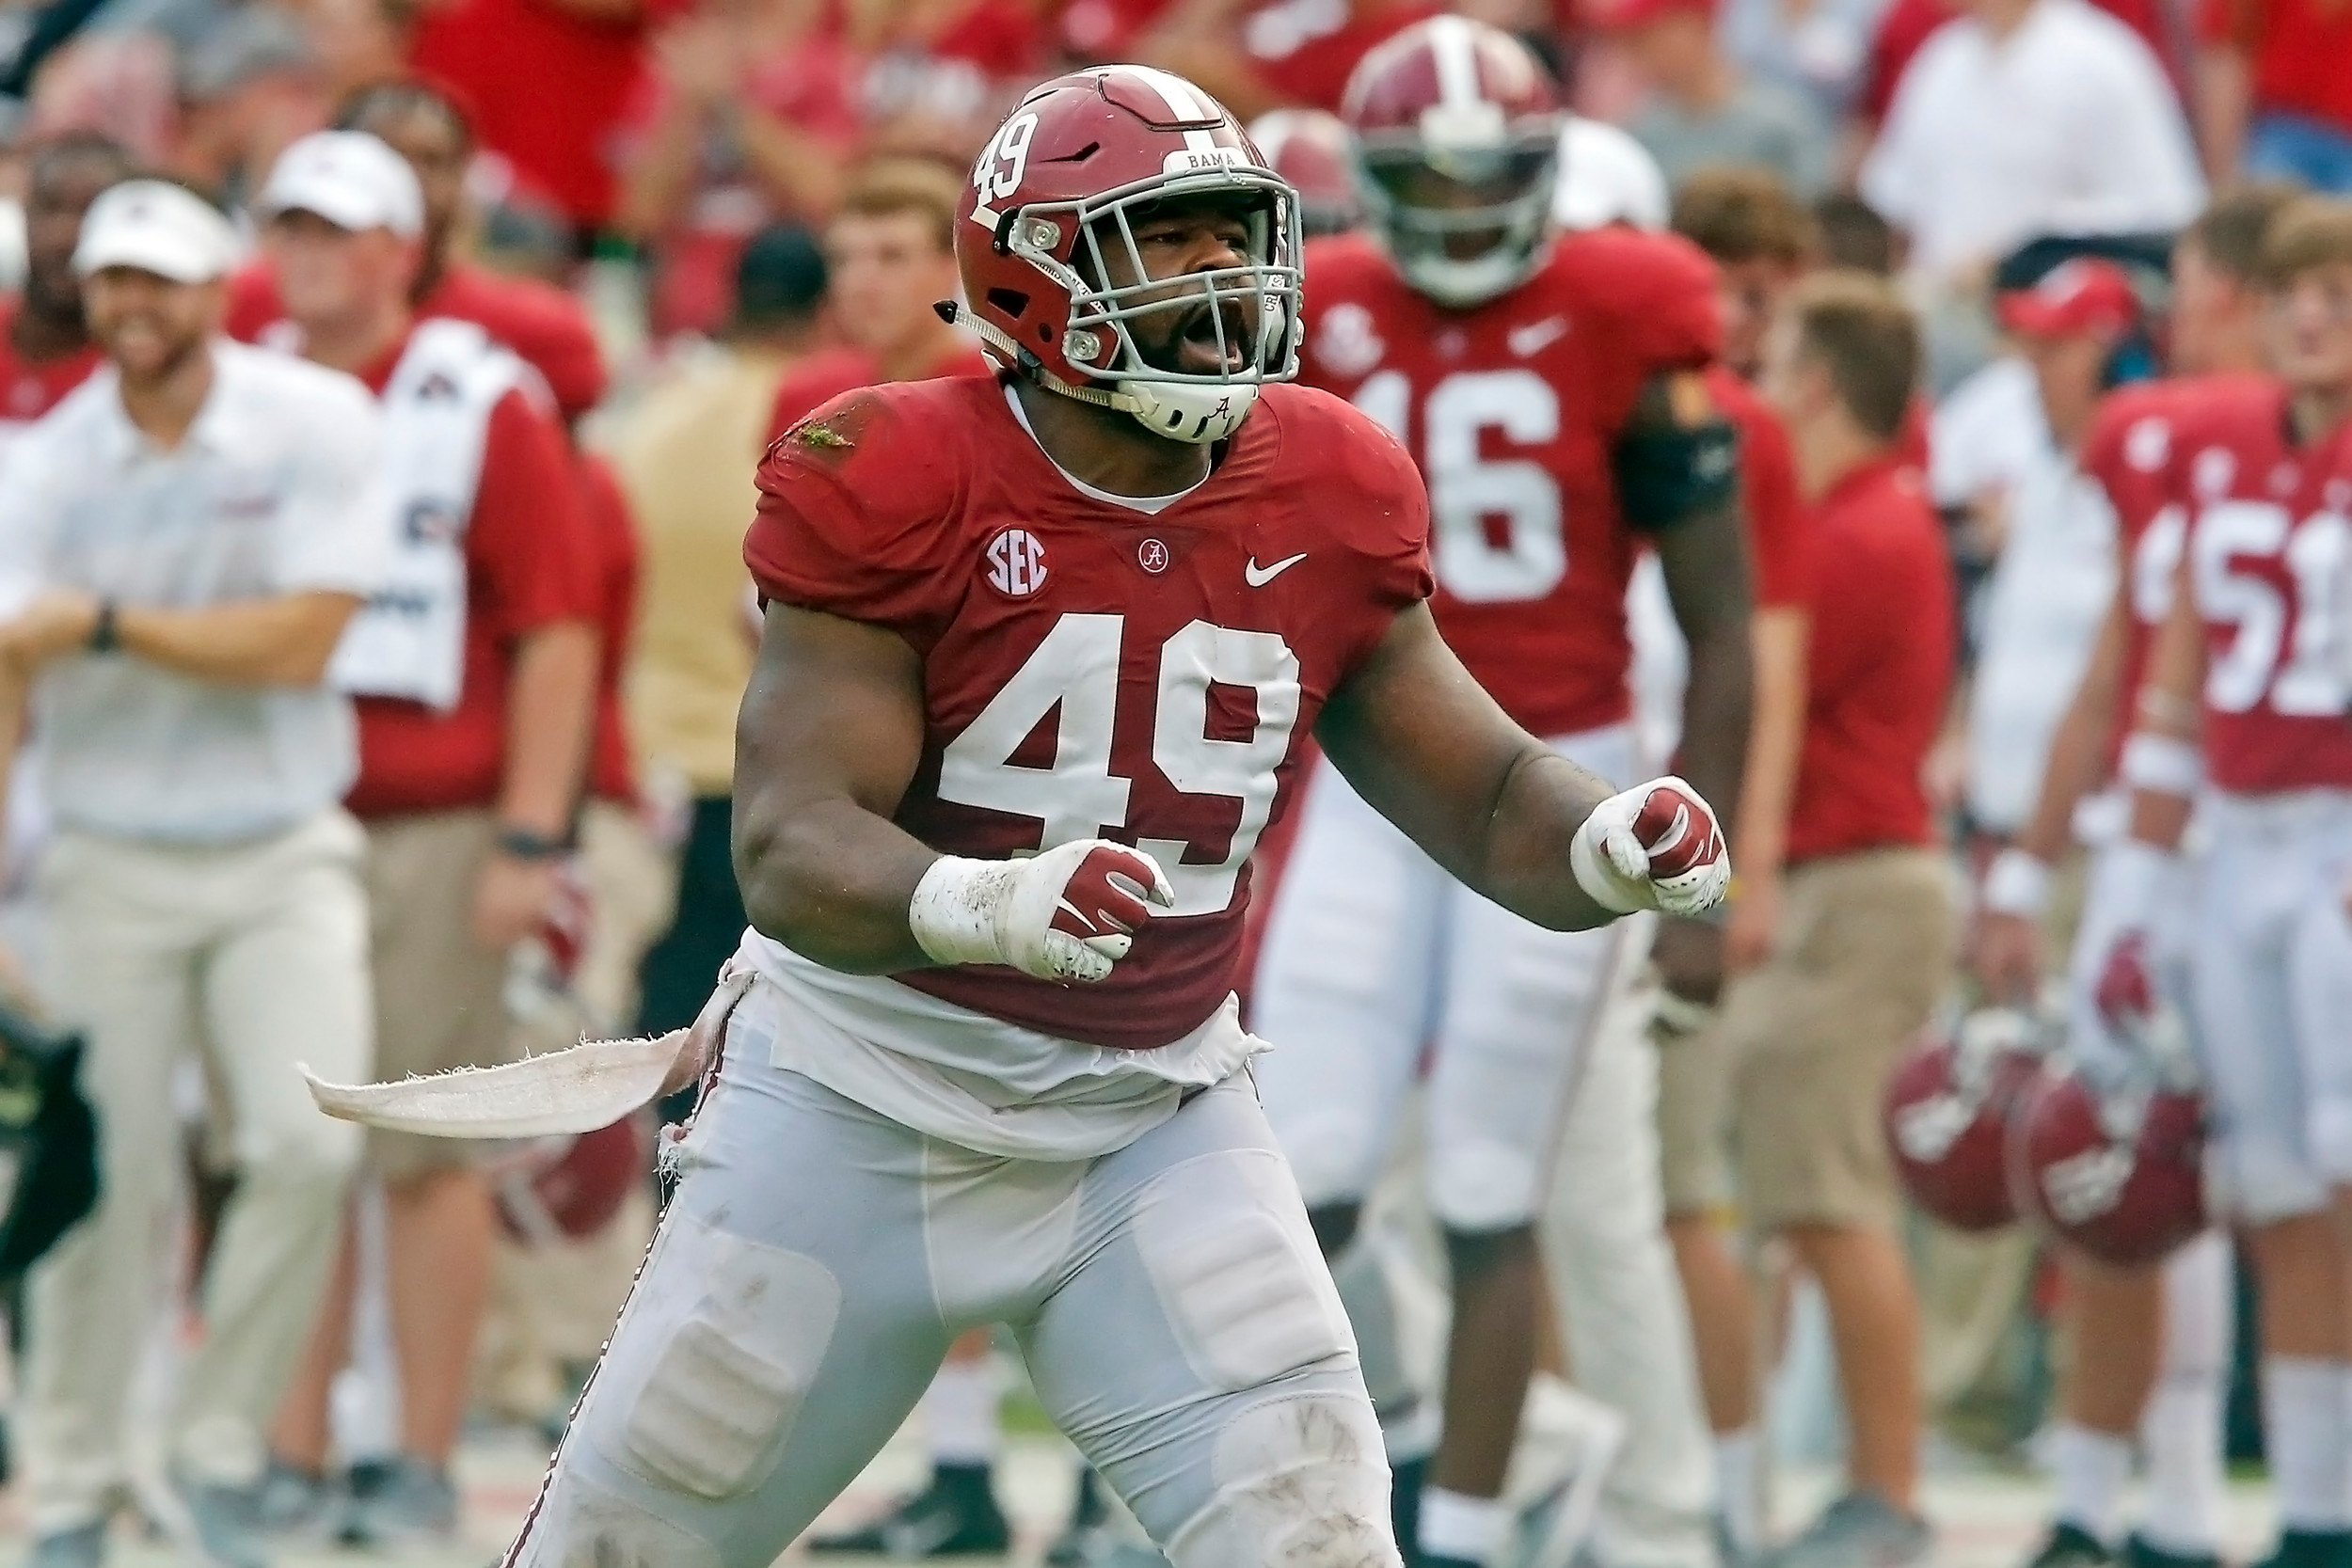 Alabama Crimson Tide defensive lineman Isaiah Buggs (49) celebrates after a sack during the game with against the Texas A&M Aggies at Bryant-Denny Stadium.  Jason Clark / Daily Mountain Eagle